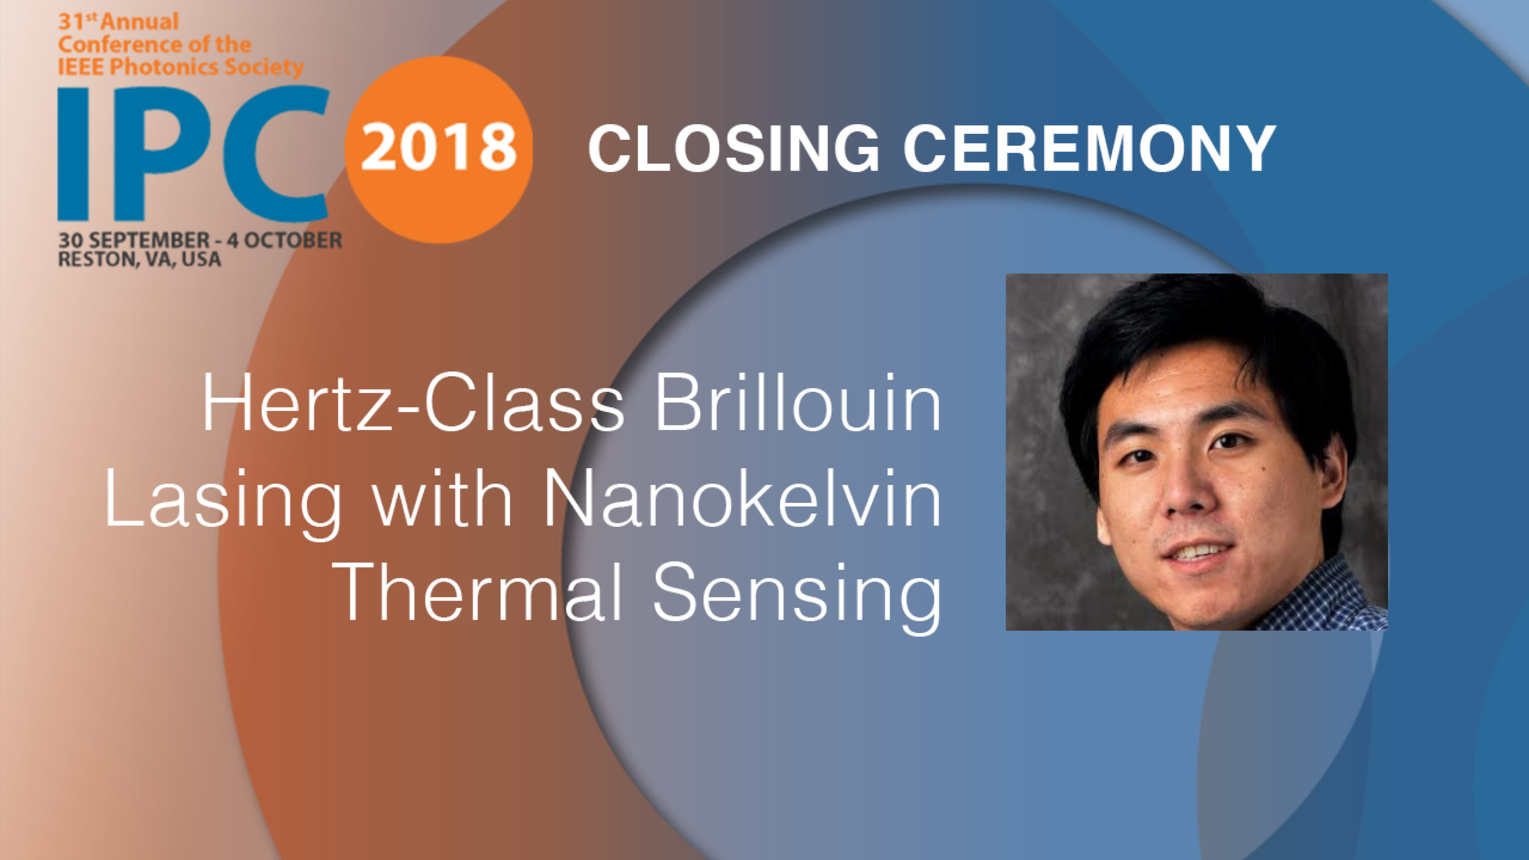 Hertz-Class Brillouin Lasing with Nanokelvin Thermal Sensing - William Loh - Closing Ceremony, IPC 2018